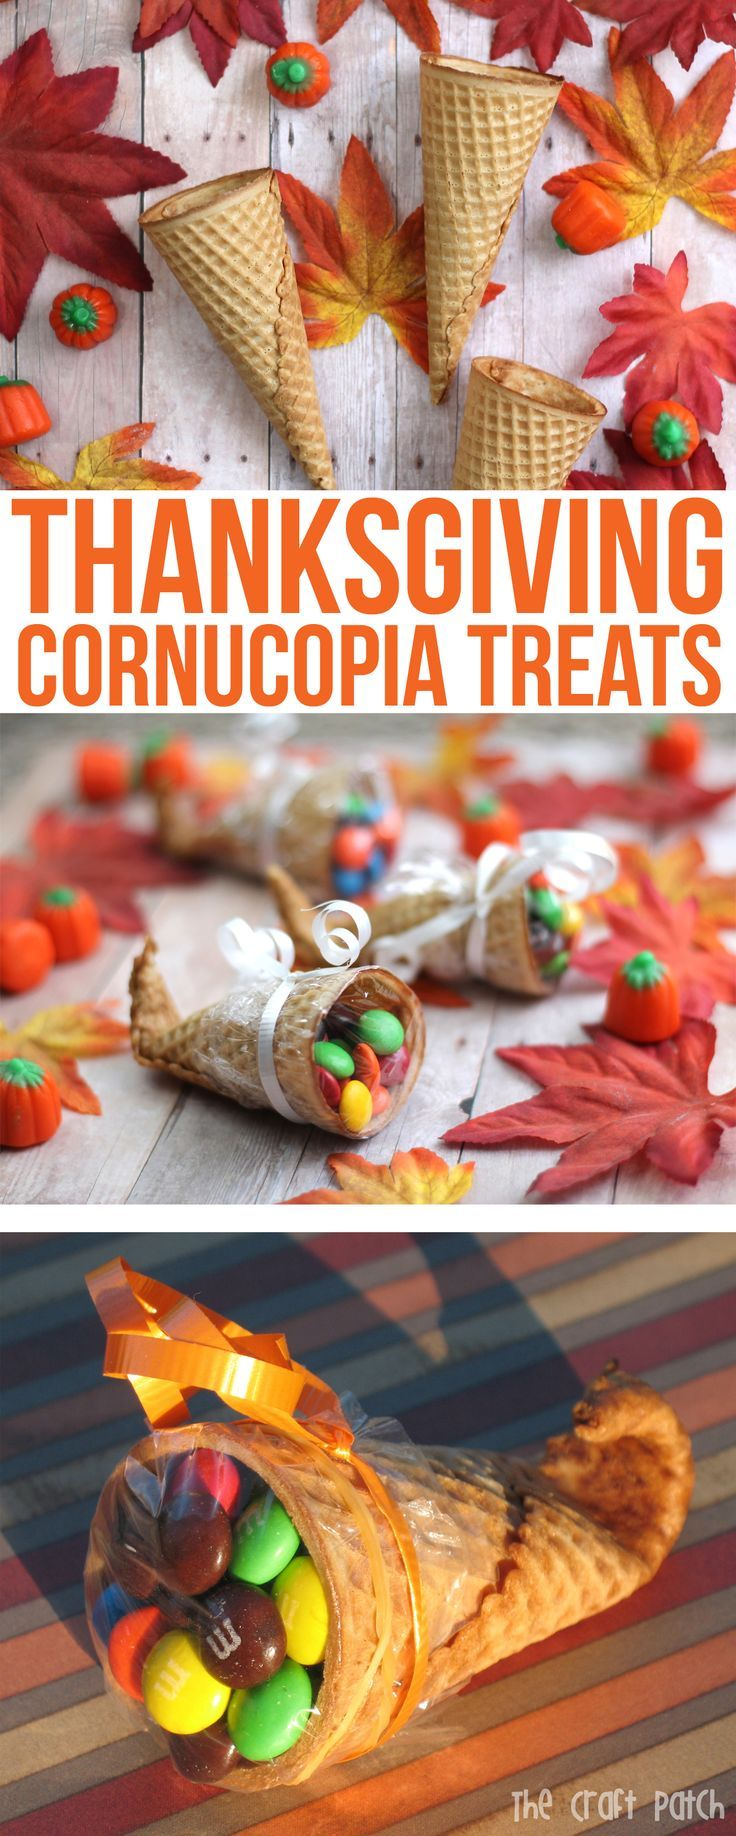 I'm going to make these Thanksgiving treats to use as place markers at our Thanksgiving table this year. So cute! Thanksgiving sugar cone cornucopia treats. #thanksgiving #thanksgivingideas